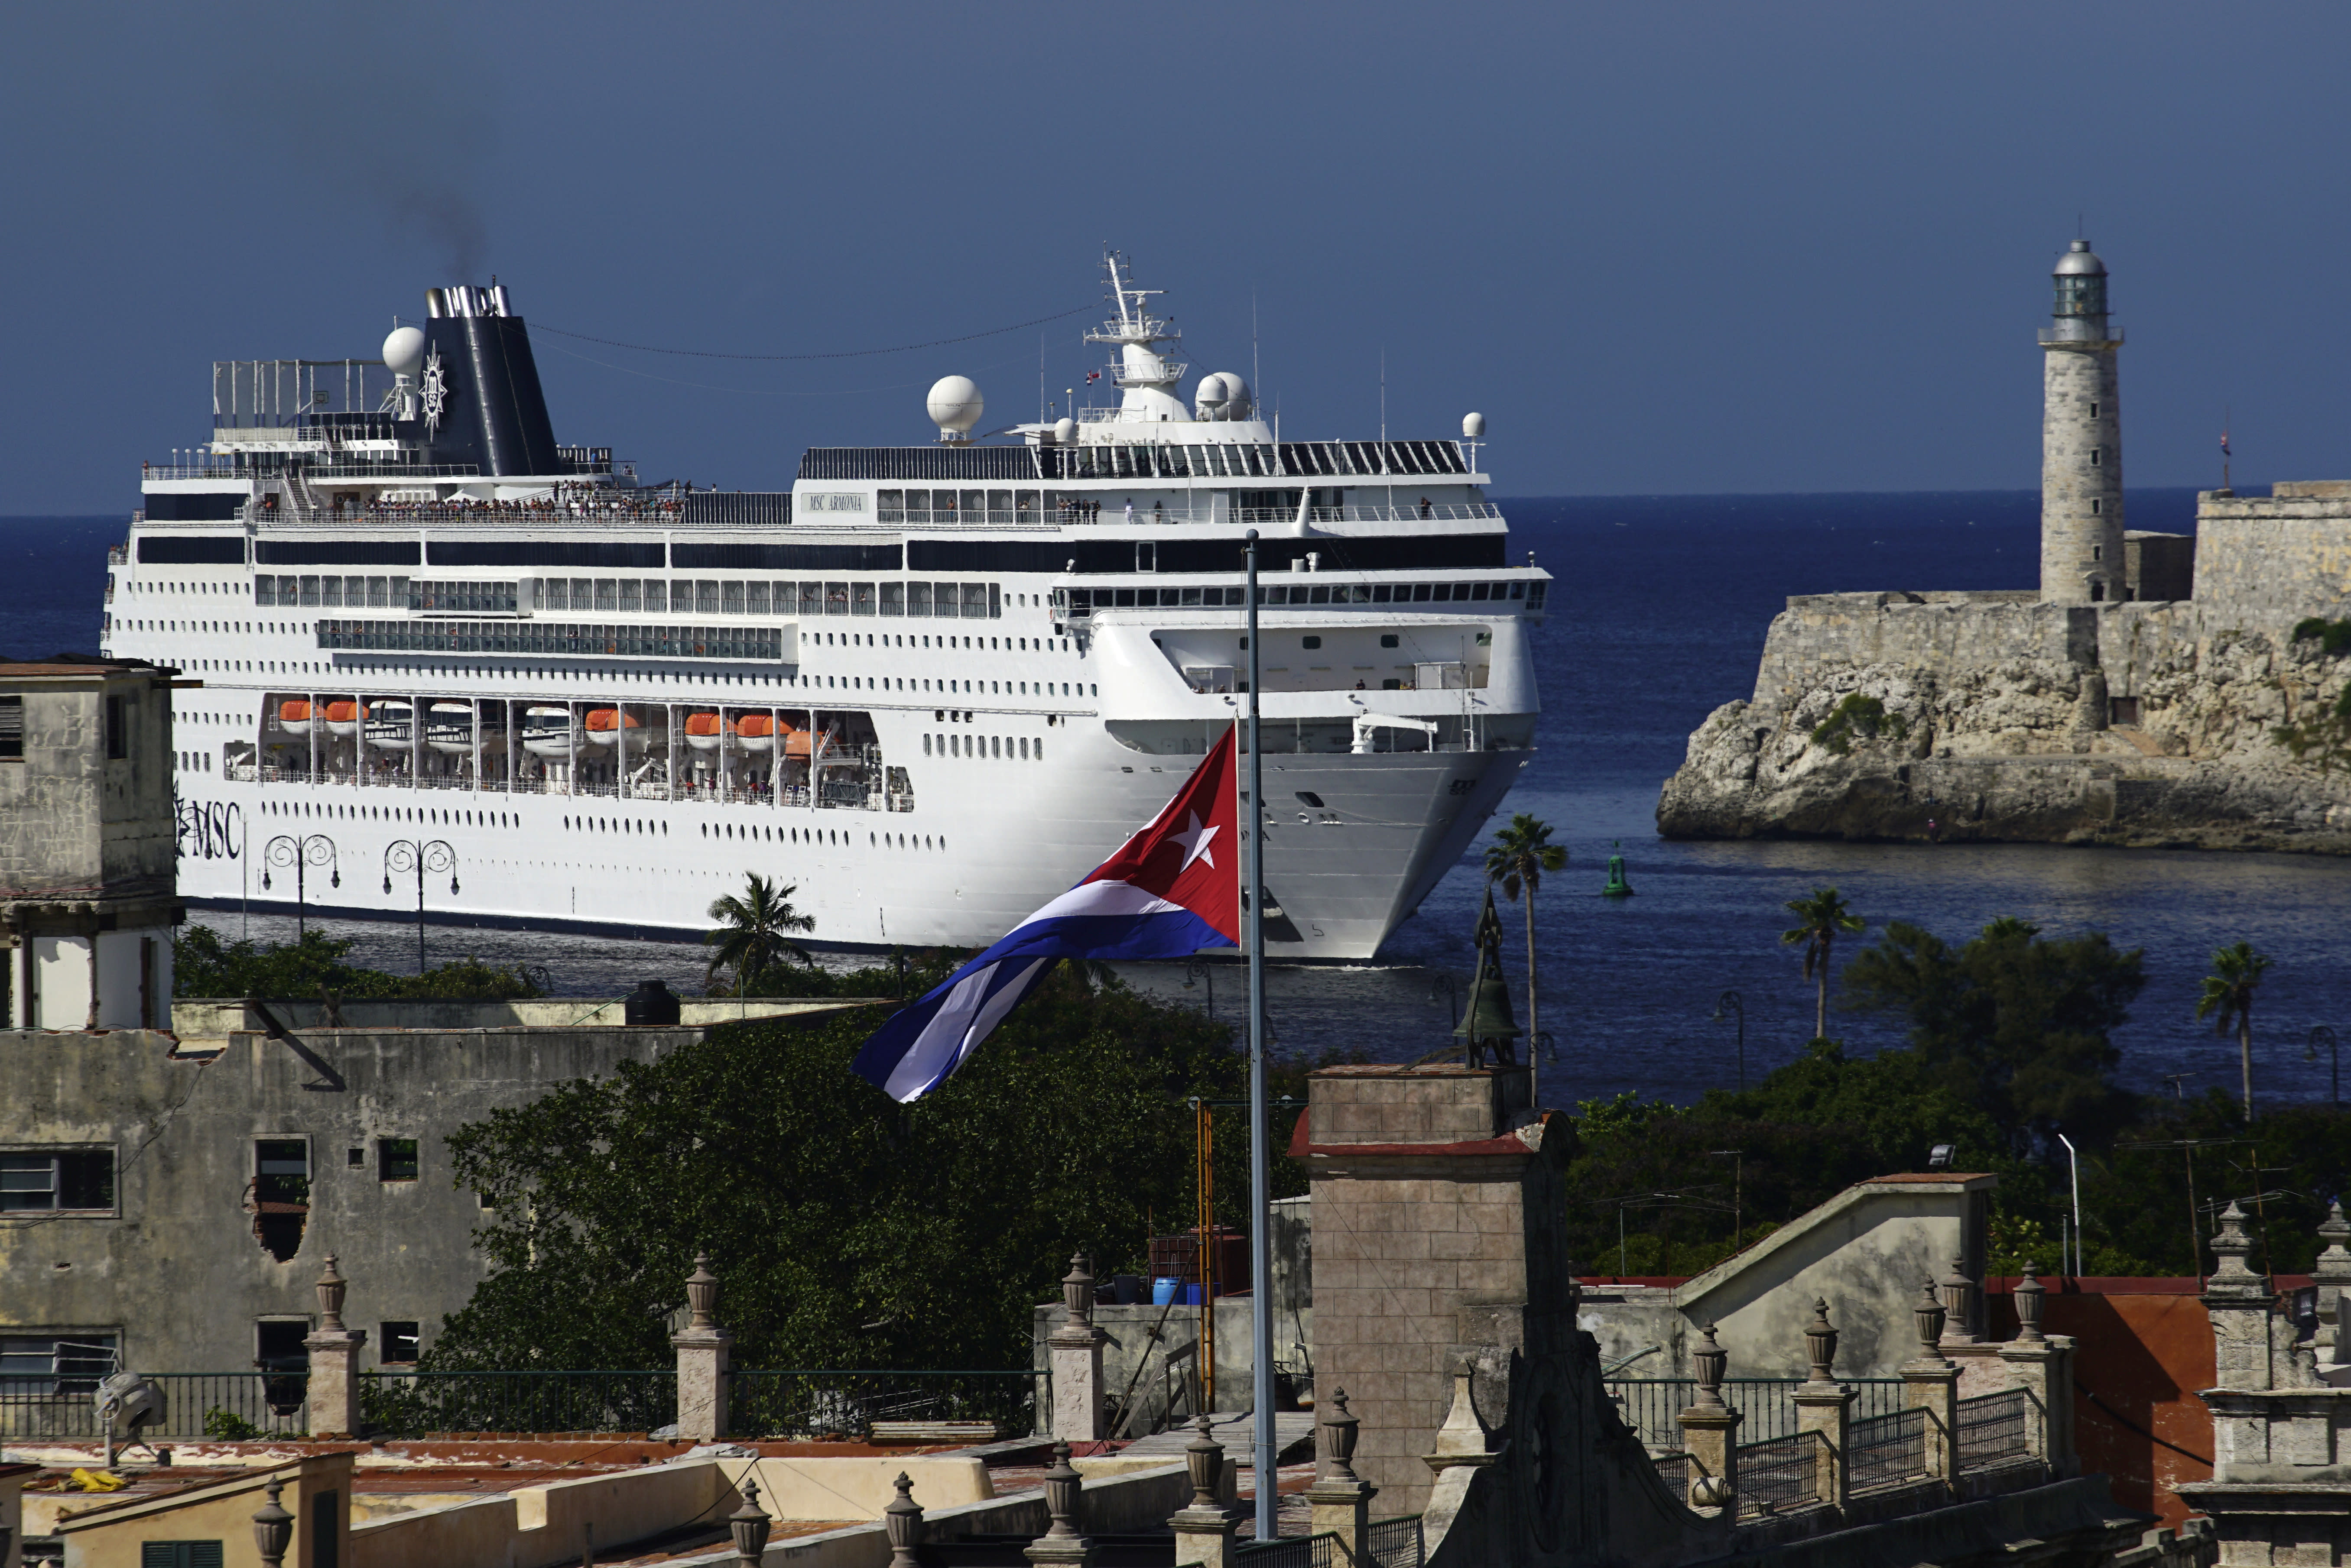 FILE - In this Nov. 29, 2016 file photo, a cruise ship enters the port in Havana, Cuba. Heirs of families that owned ports which are now being used to dock cruise ships that began traveling to Cuba in 2016 under President Barack Obama's detente with the island, filed the first lawsuits on Thursday, May 2, 2019, against European and American companies doing business on confiscated properties in Cuba. (AP Photo/Ramon Espinosa, File)